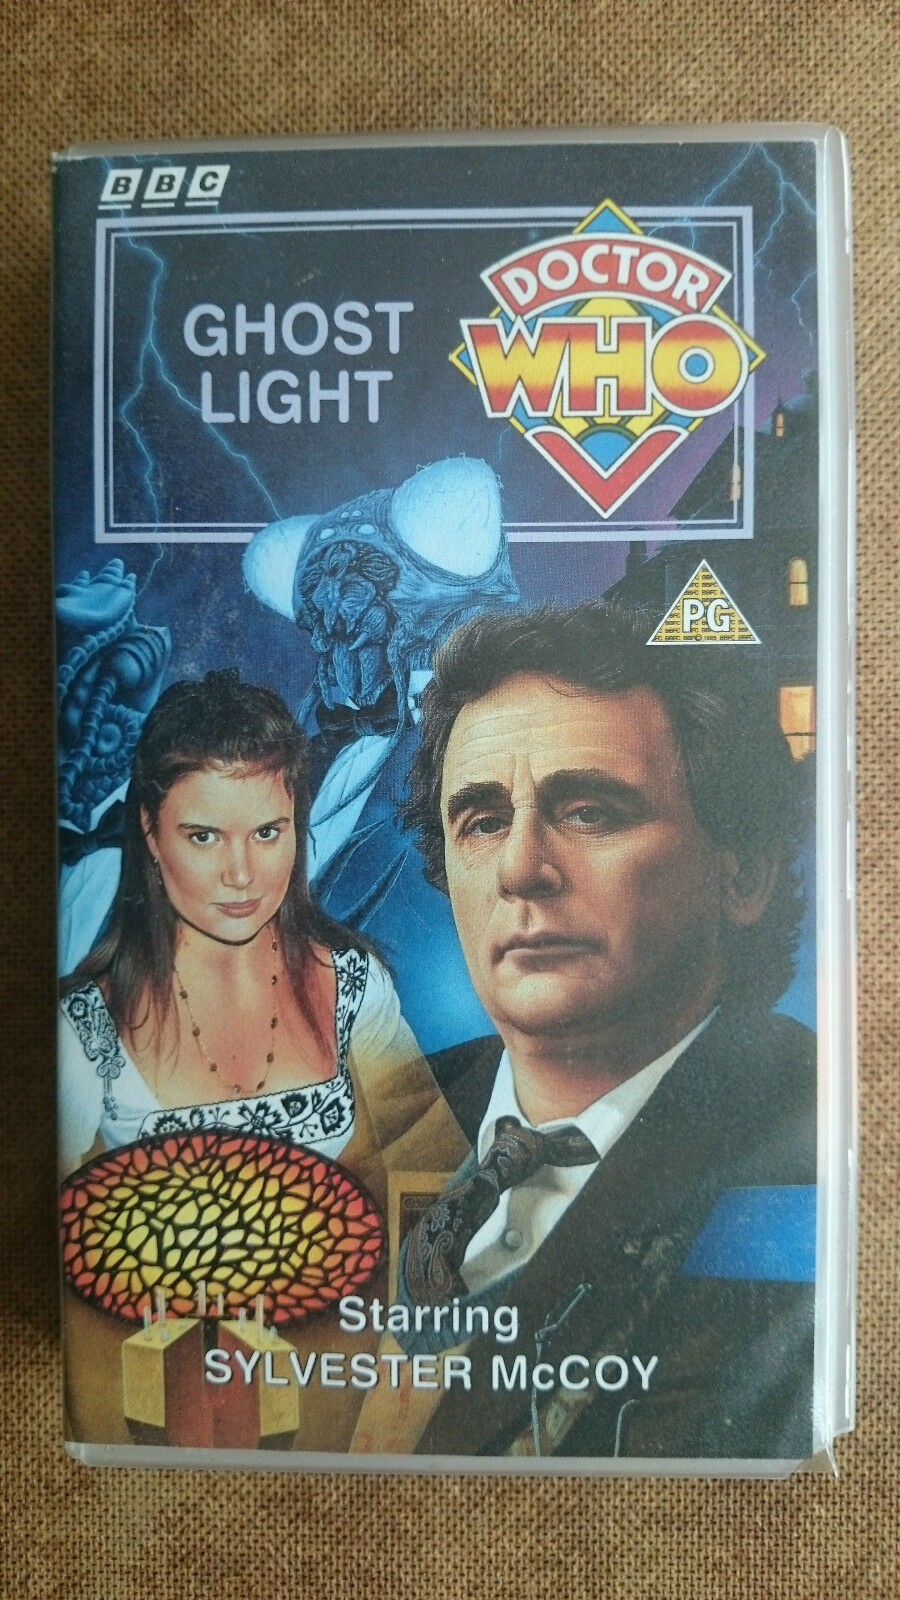 Doctor Who - Ghost Light (VHS, 1994) - Sylvester McCoy